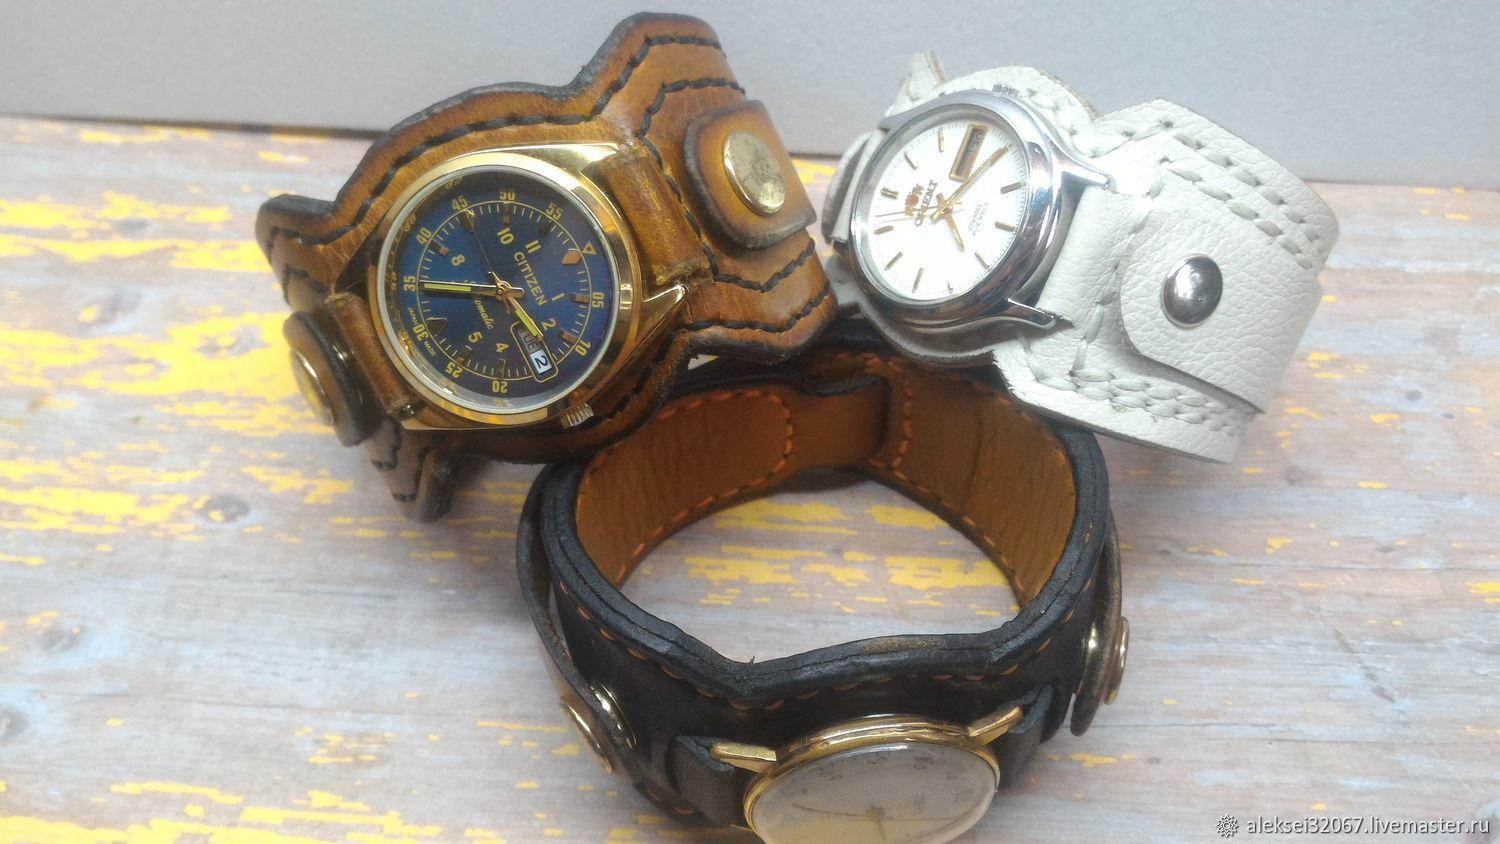 Leather strap for watches, Watch Straps, Smolensk,  Фото №1